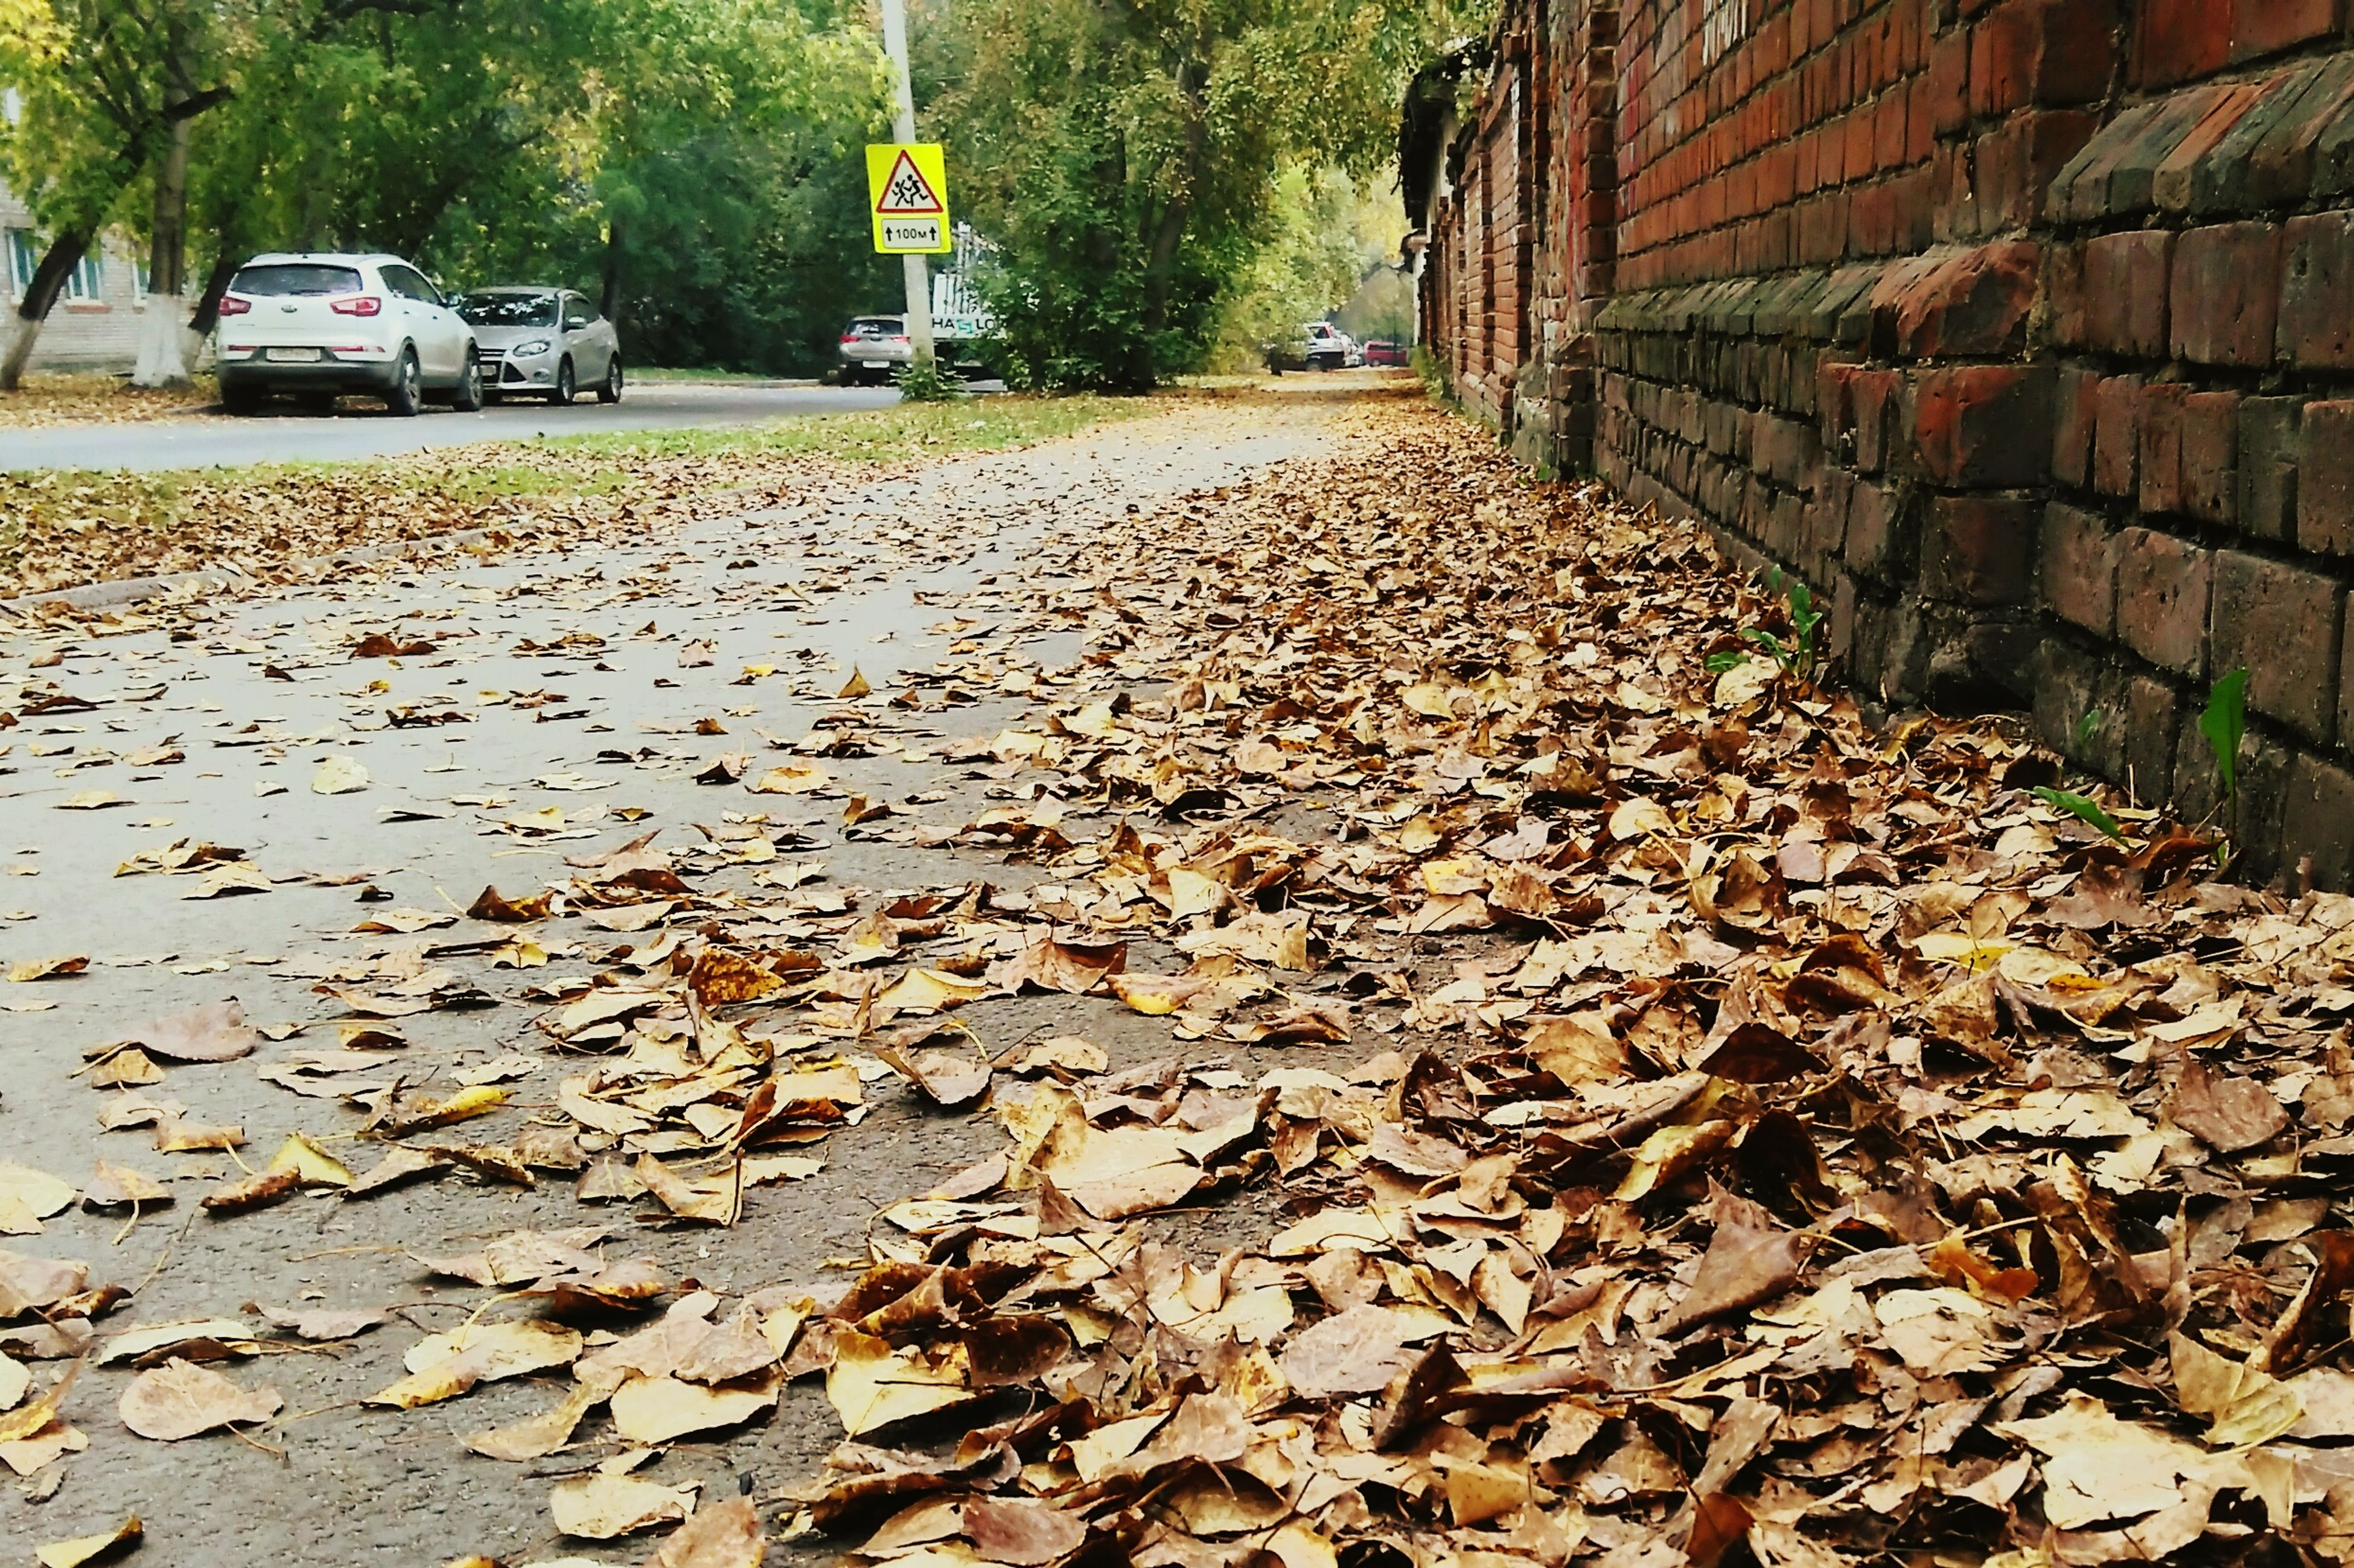 leaf, autumn, season, dry, transportation, change, street, fallen, car, land vehicle, road, leaves, mode of transport, surface level, day, the way forward, building exterior, outdoors, fragility, natural condition, abundance, fallen leaf, footpath